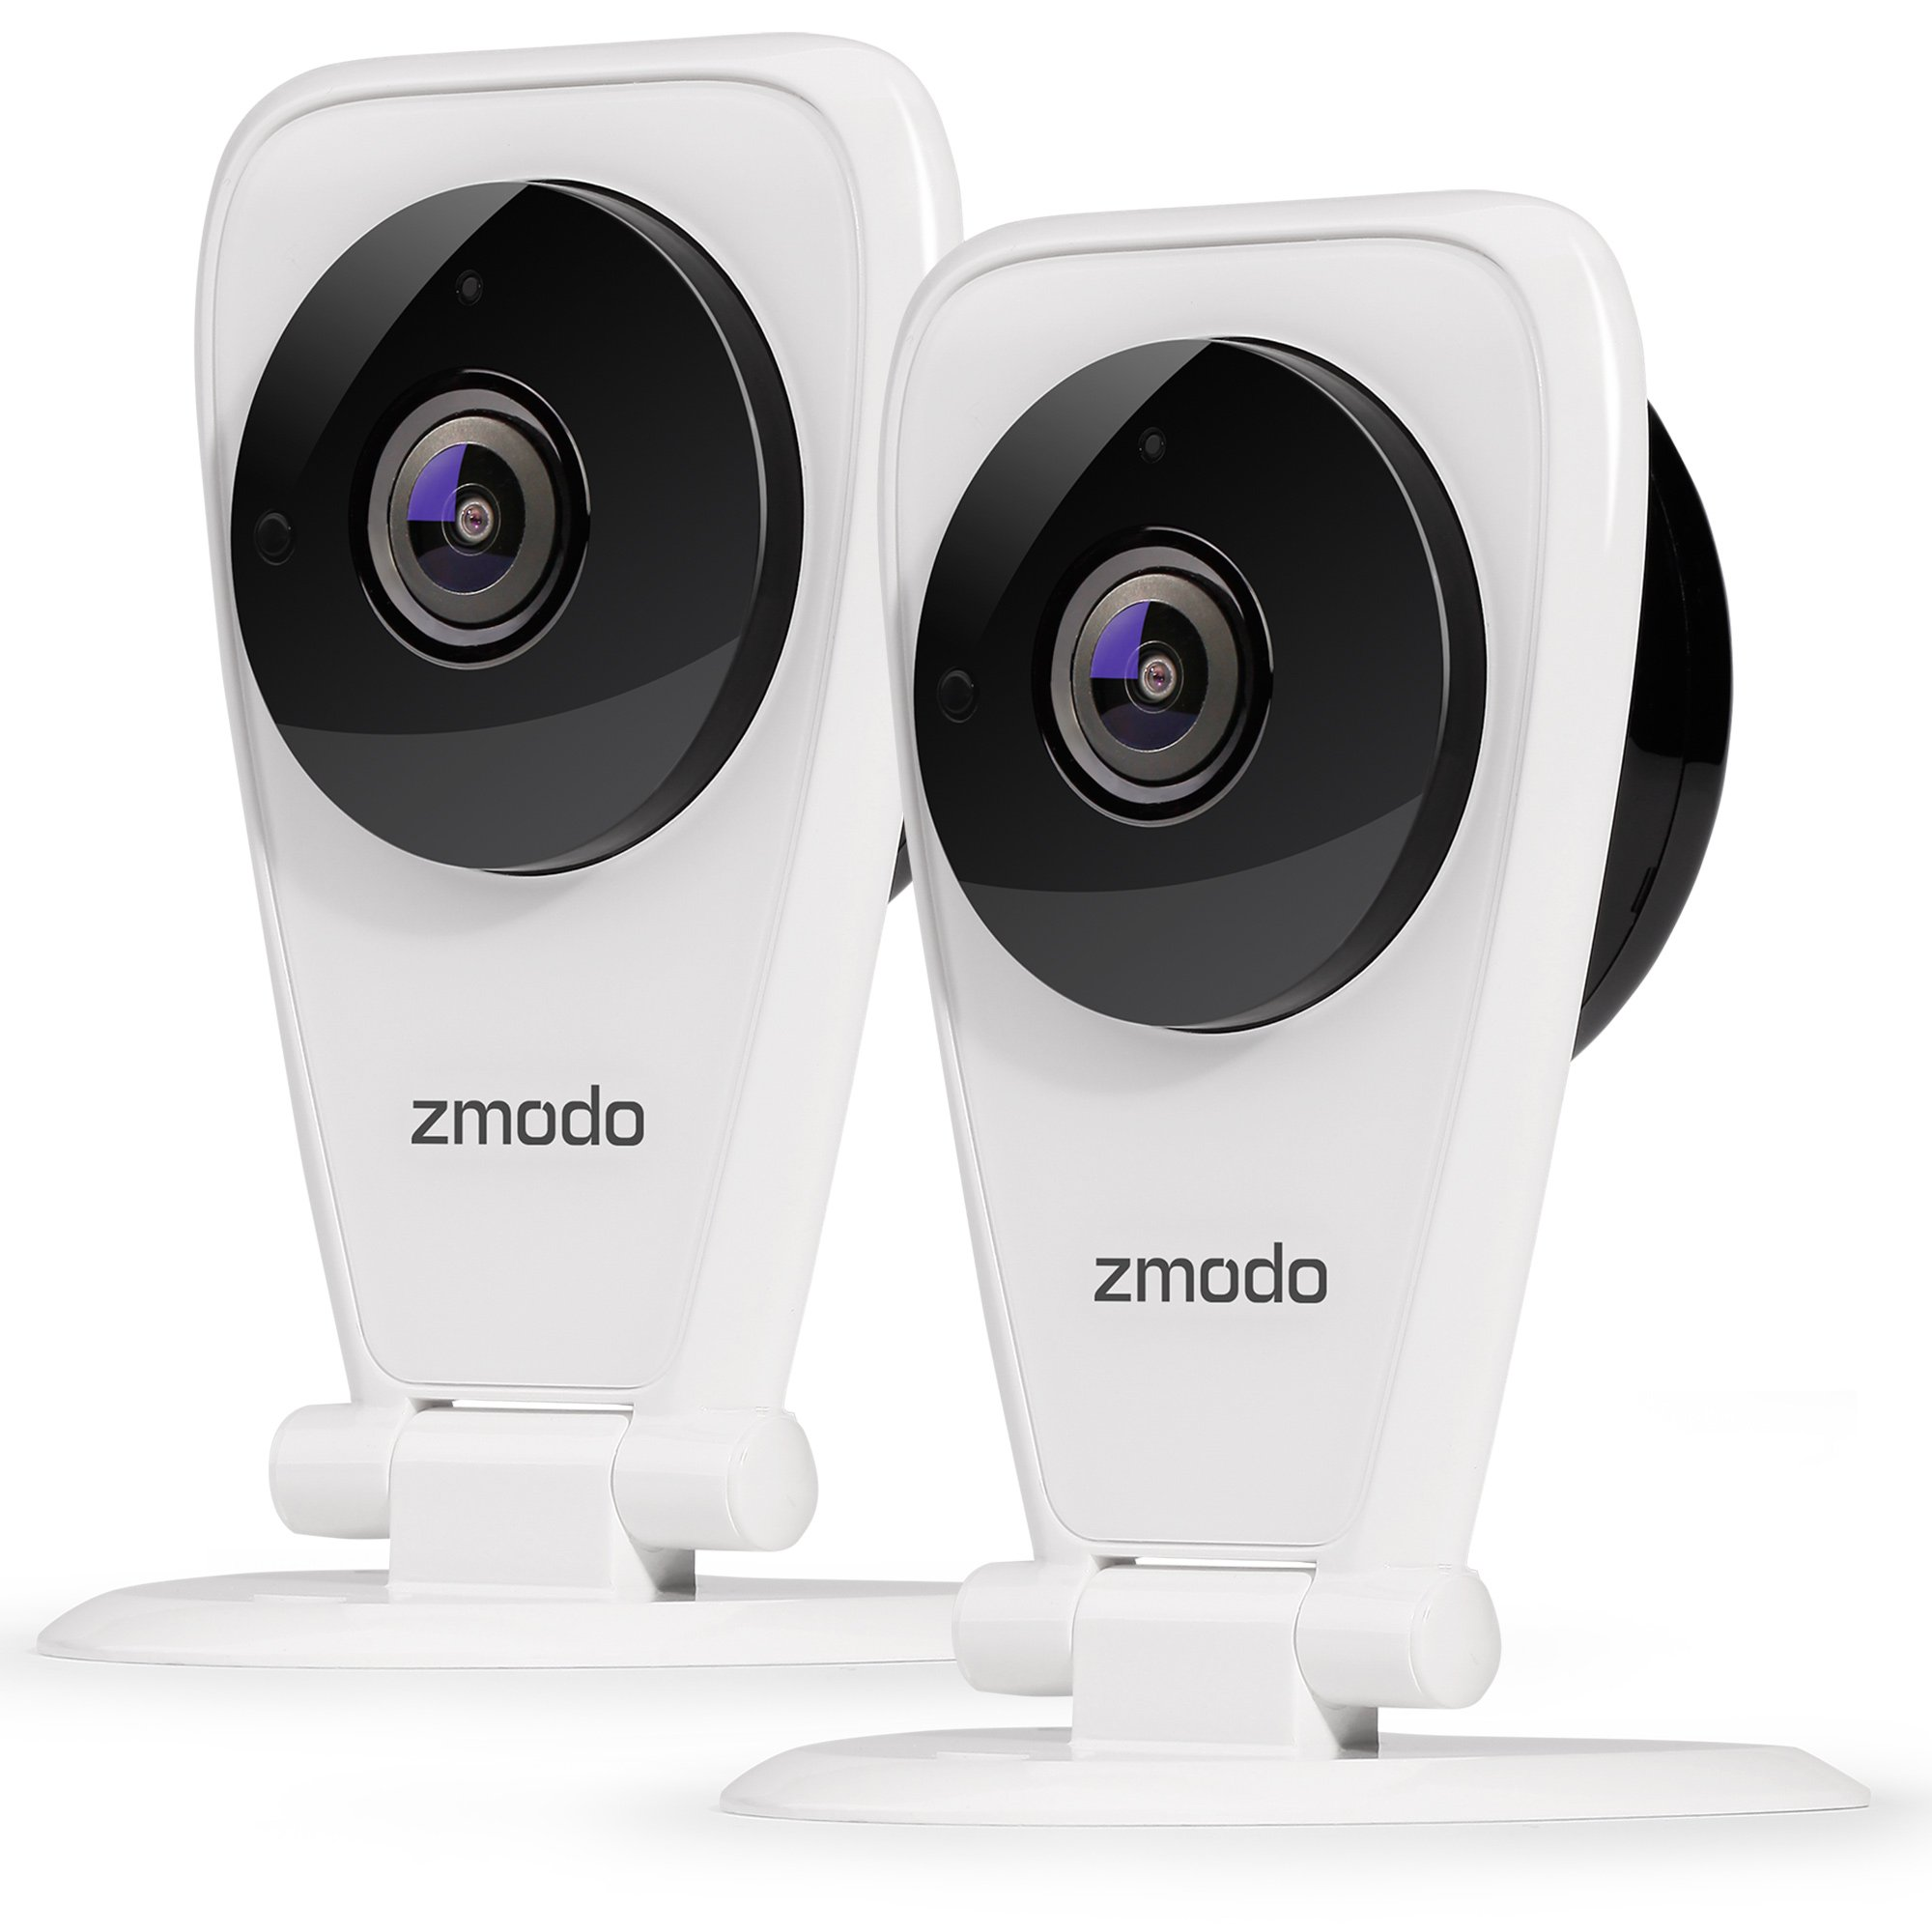 Get Quotations · Zmodo EZCam 720p HD Wi-Fi Wireless Security Surveillance IP Camera System with Night Vision Cheap 4 Channel System, find